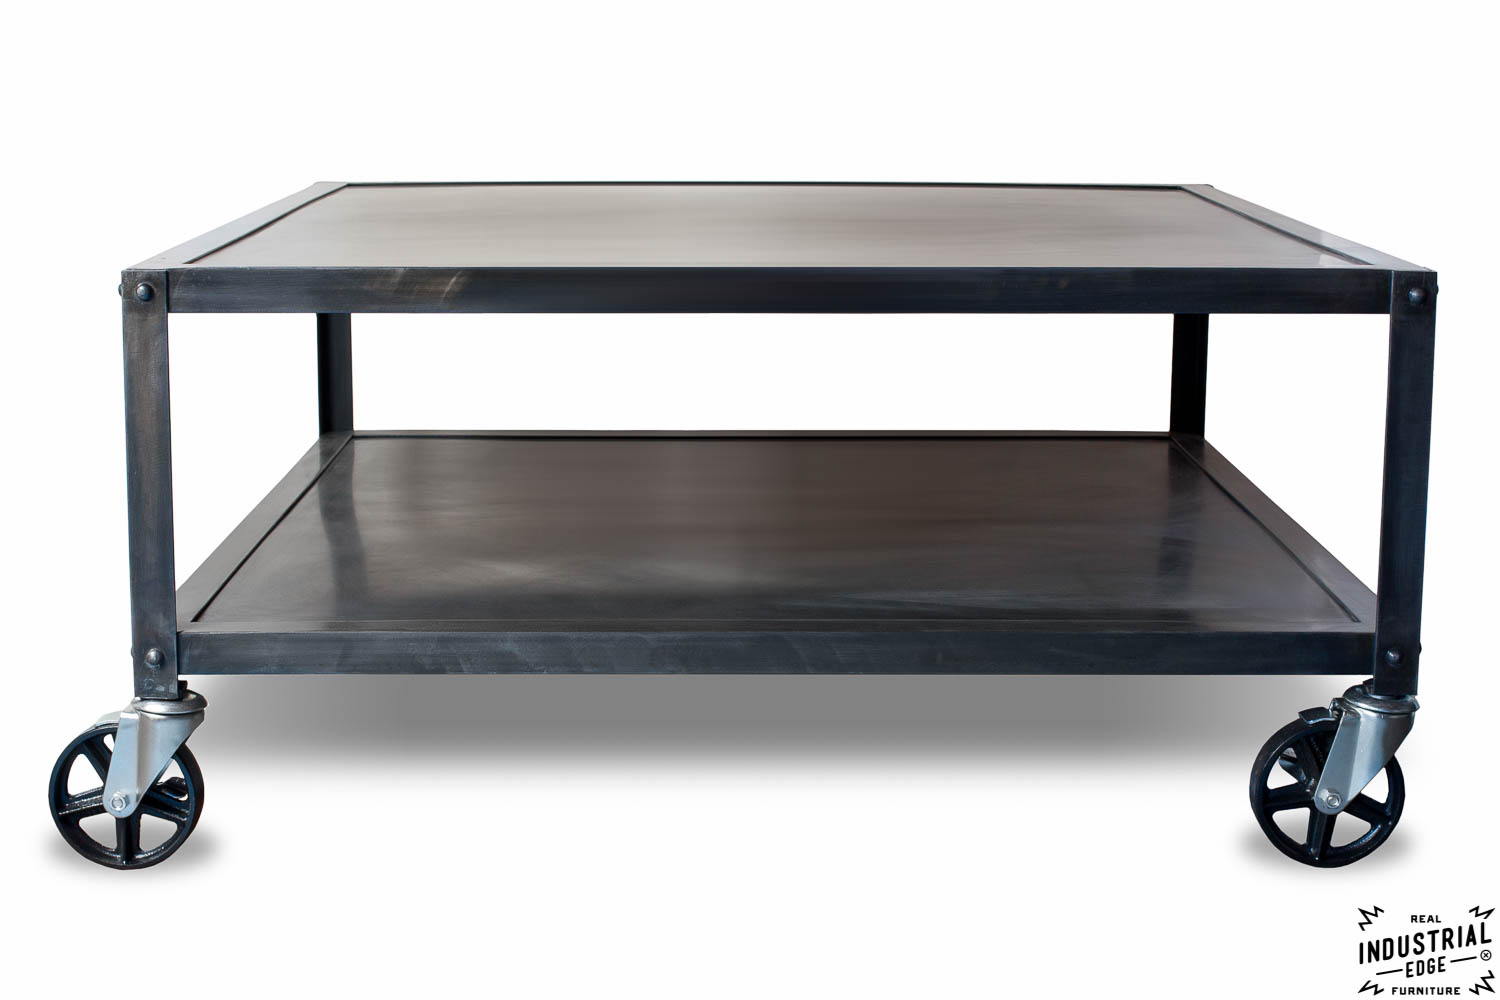 Industrial steel rolling coffee table real industrial edge furniture custom industrial Industrial metal coffee table